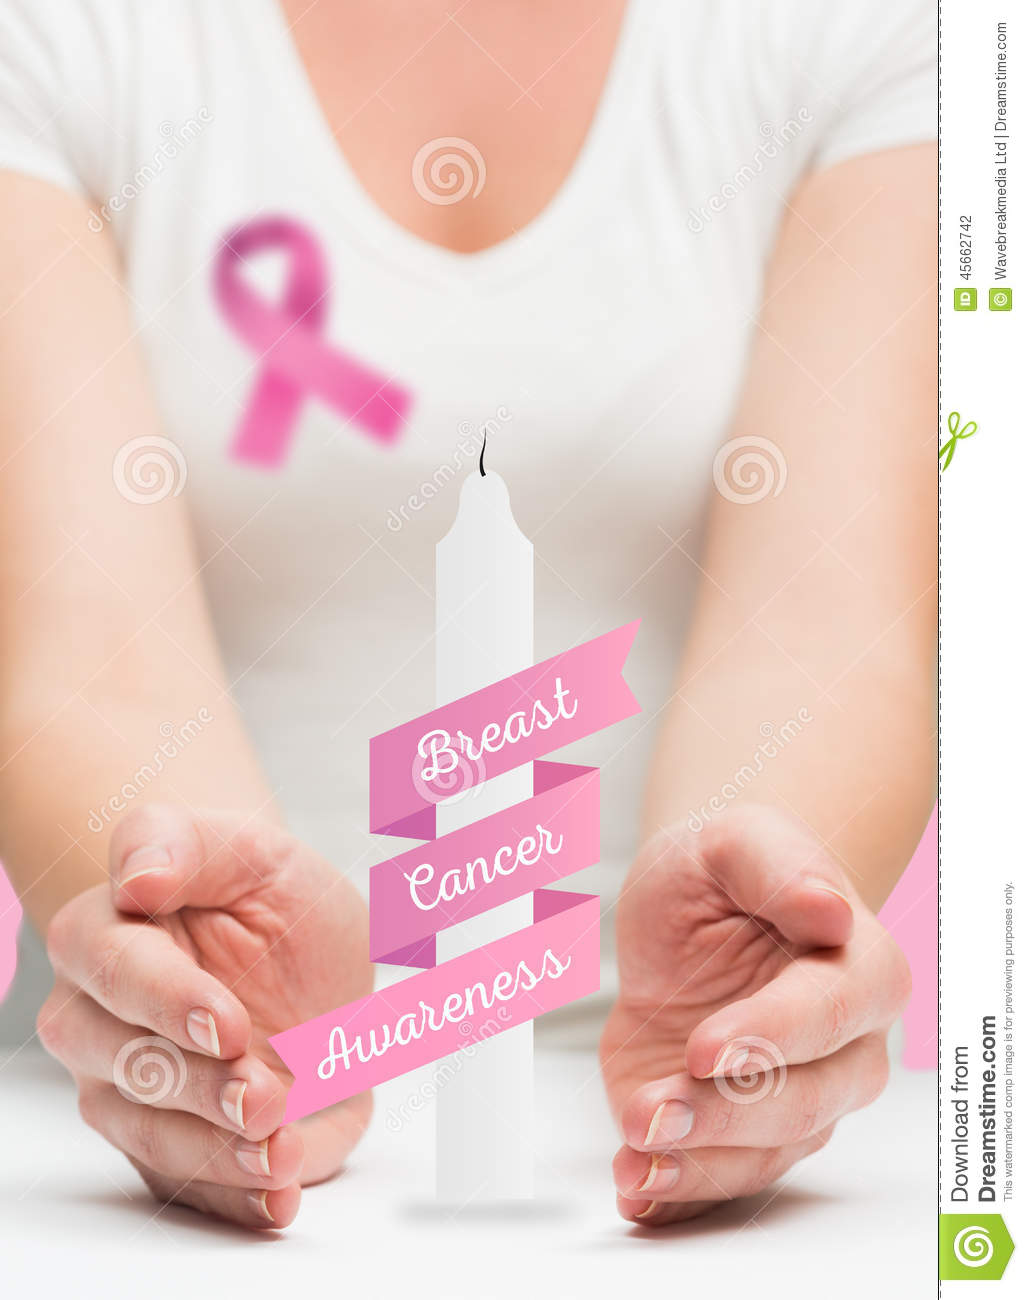 woman presenting breast cancer awareness message stock cancer awareness clip art free cancer awareness clipart